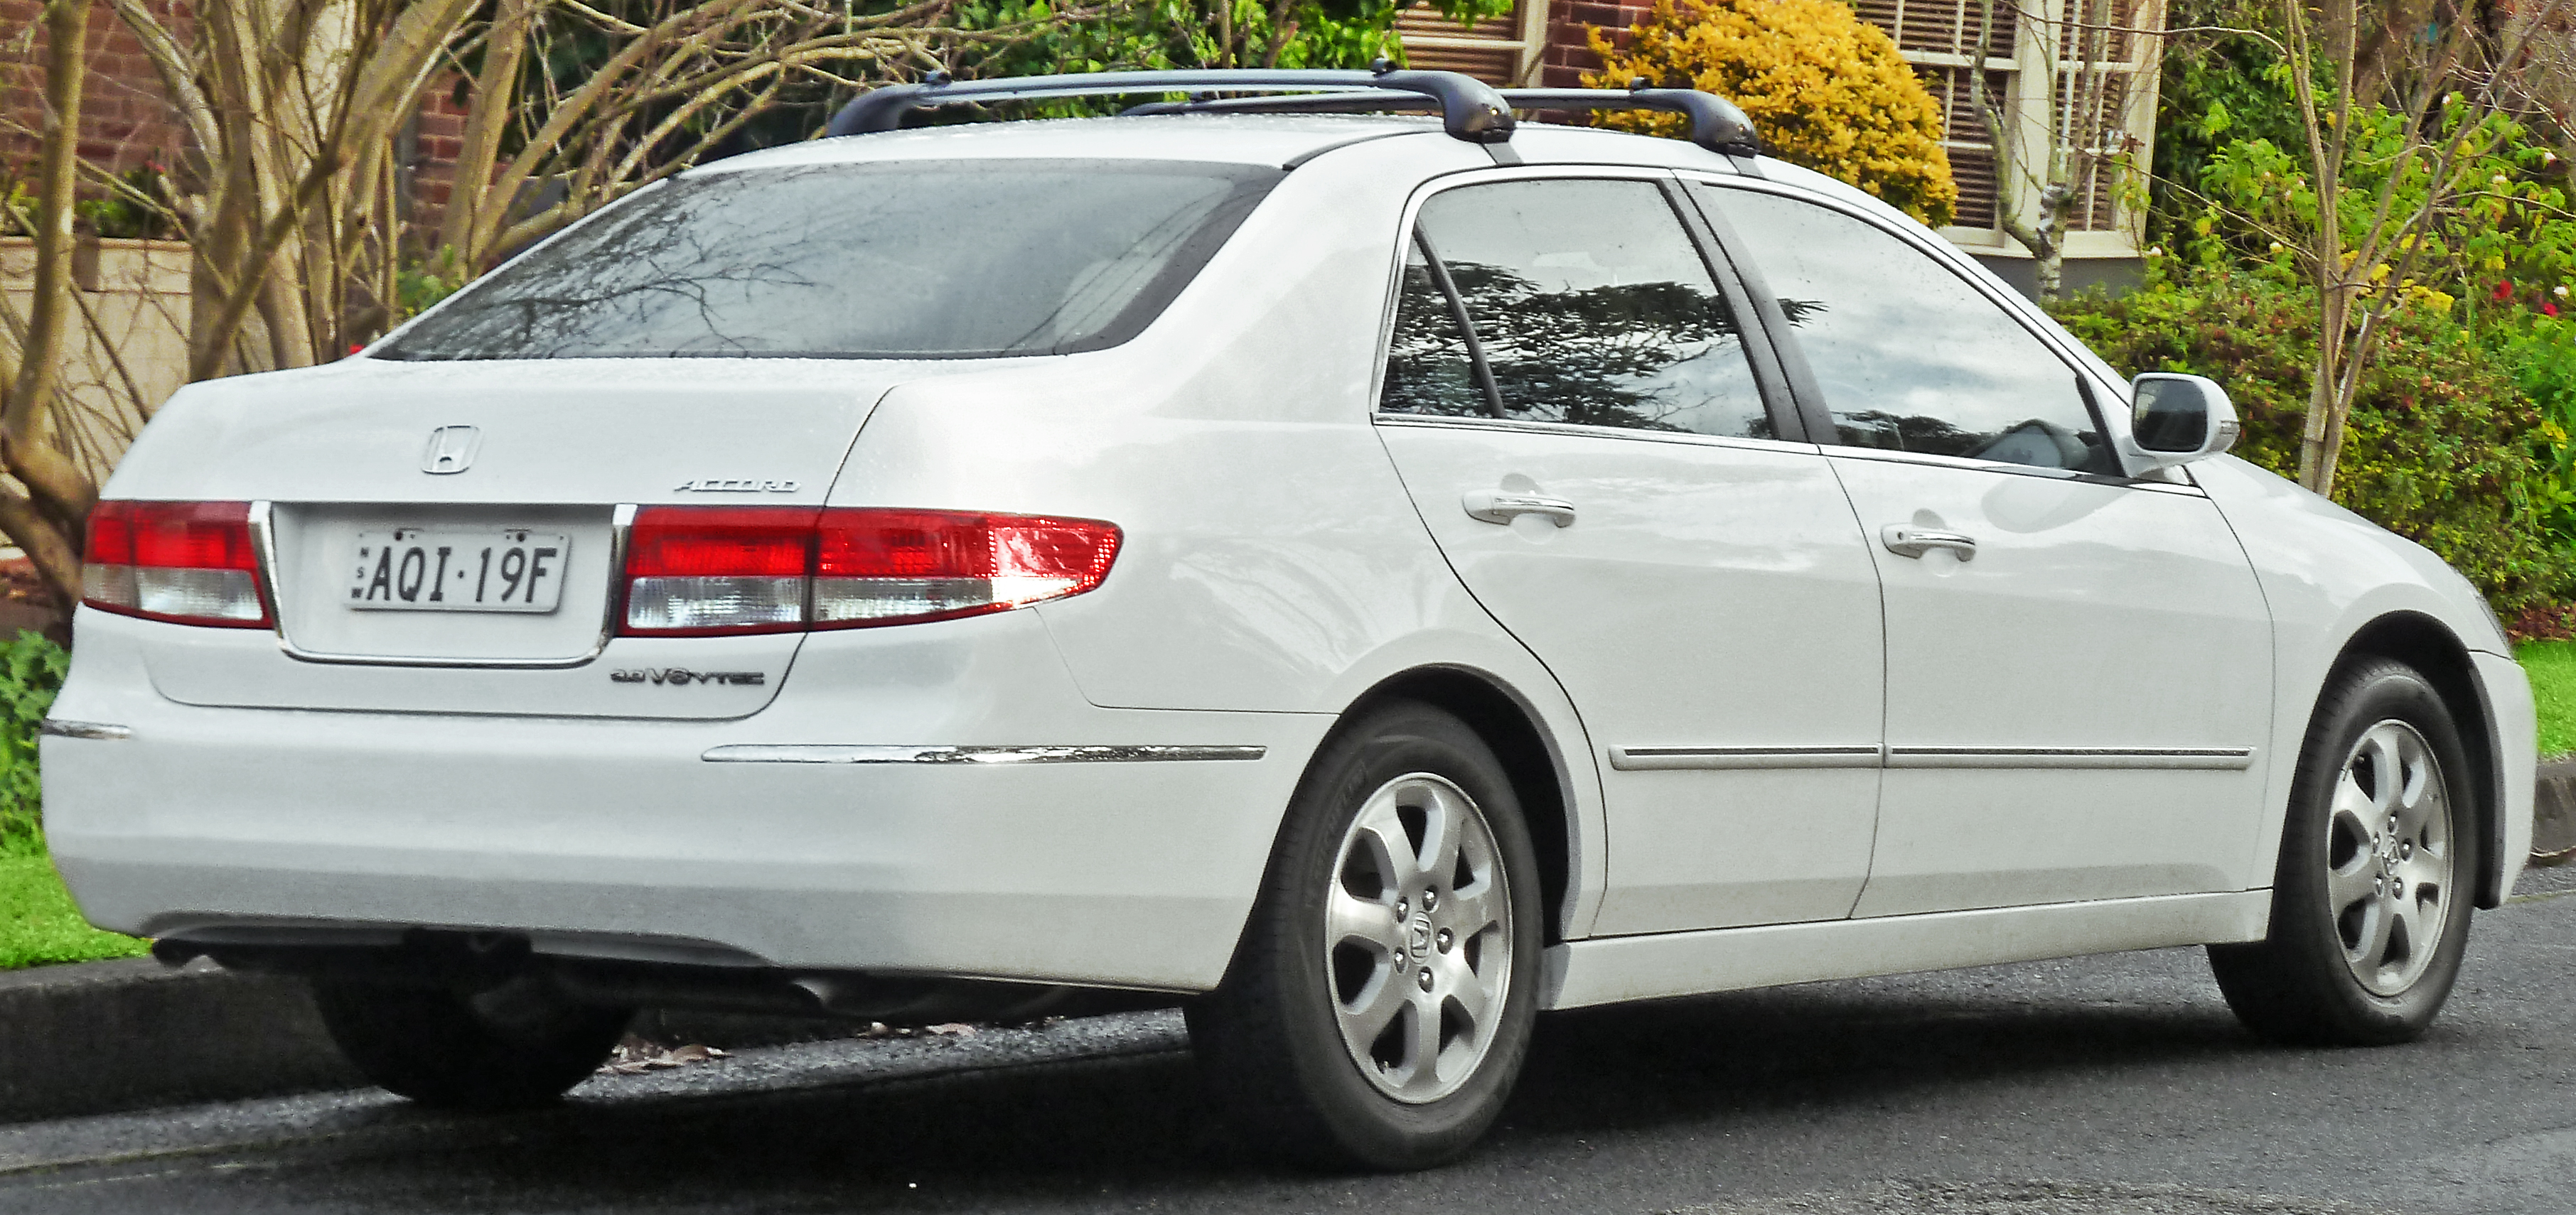 File 2003 2006 Honda Accord V6 Sedan 2011 07 17 Jpg Wikimedia Commons